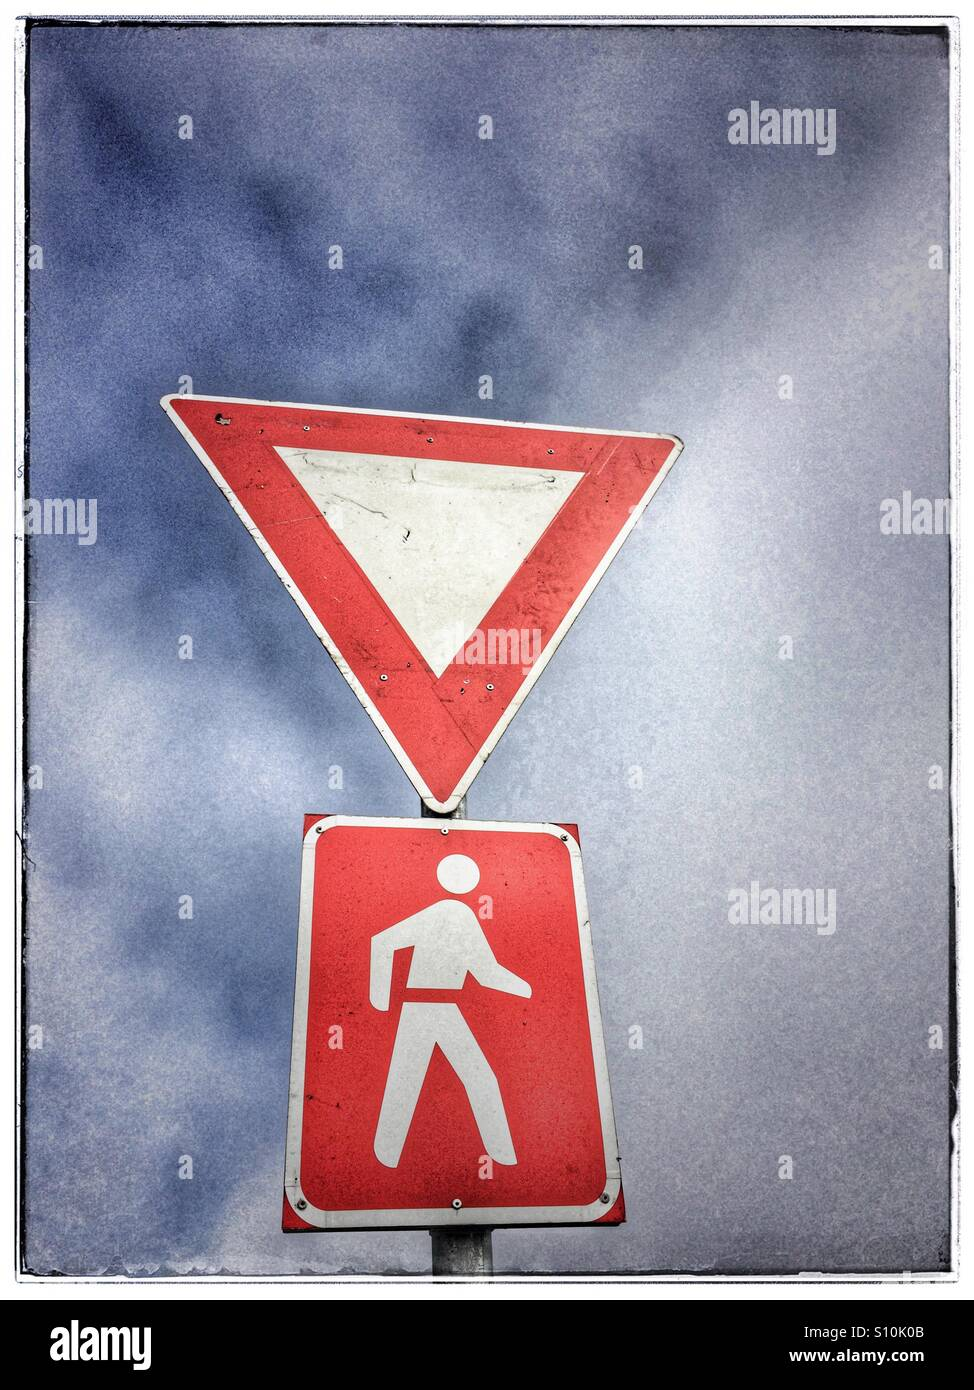 Yield sign. - Stock Image